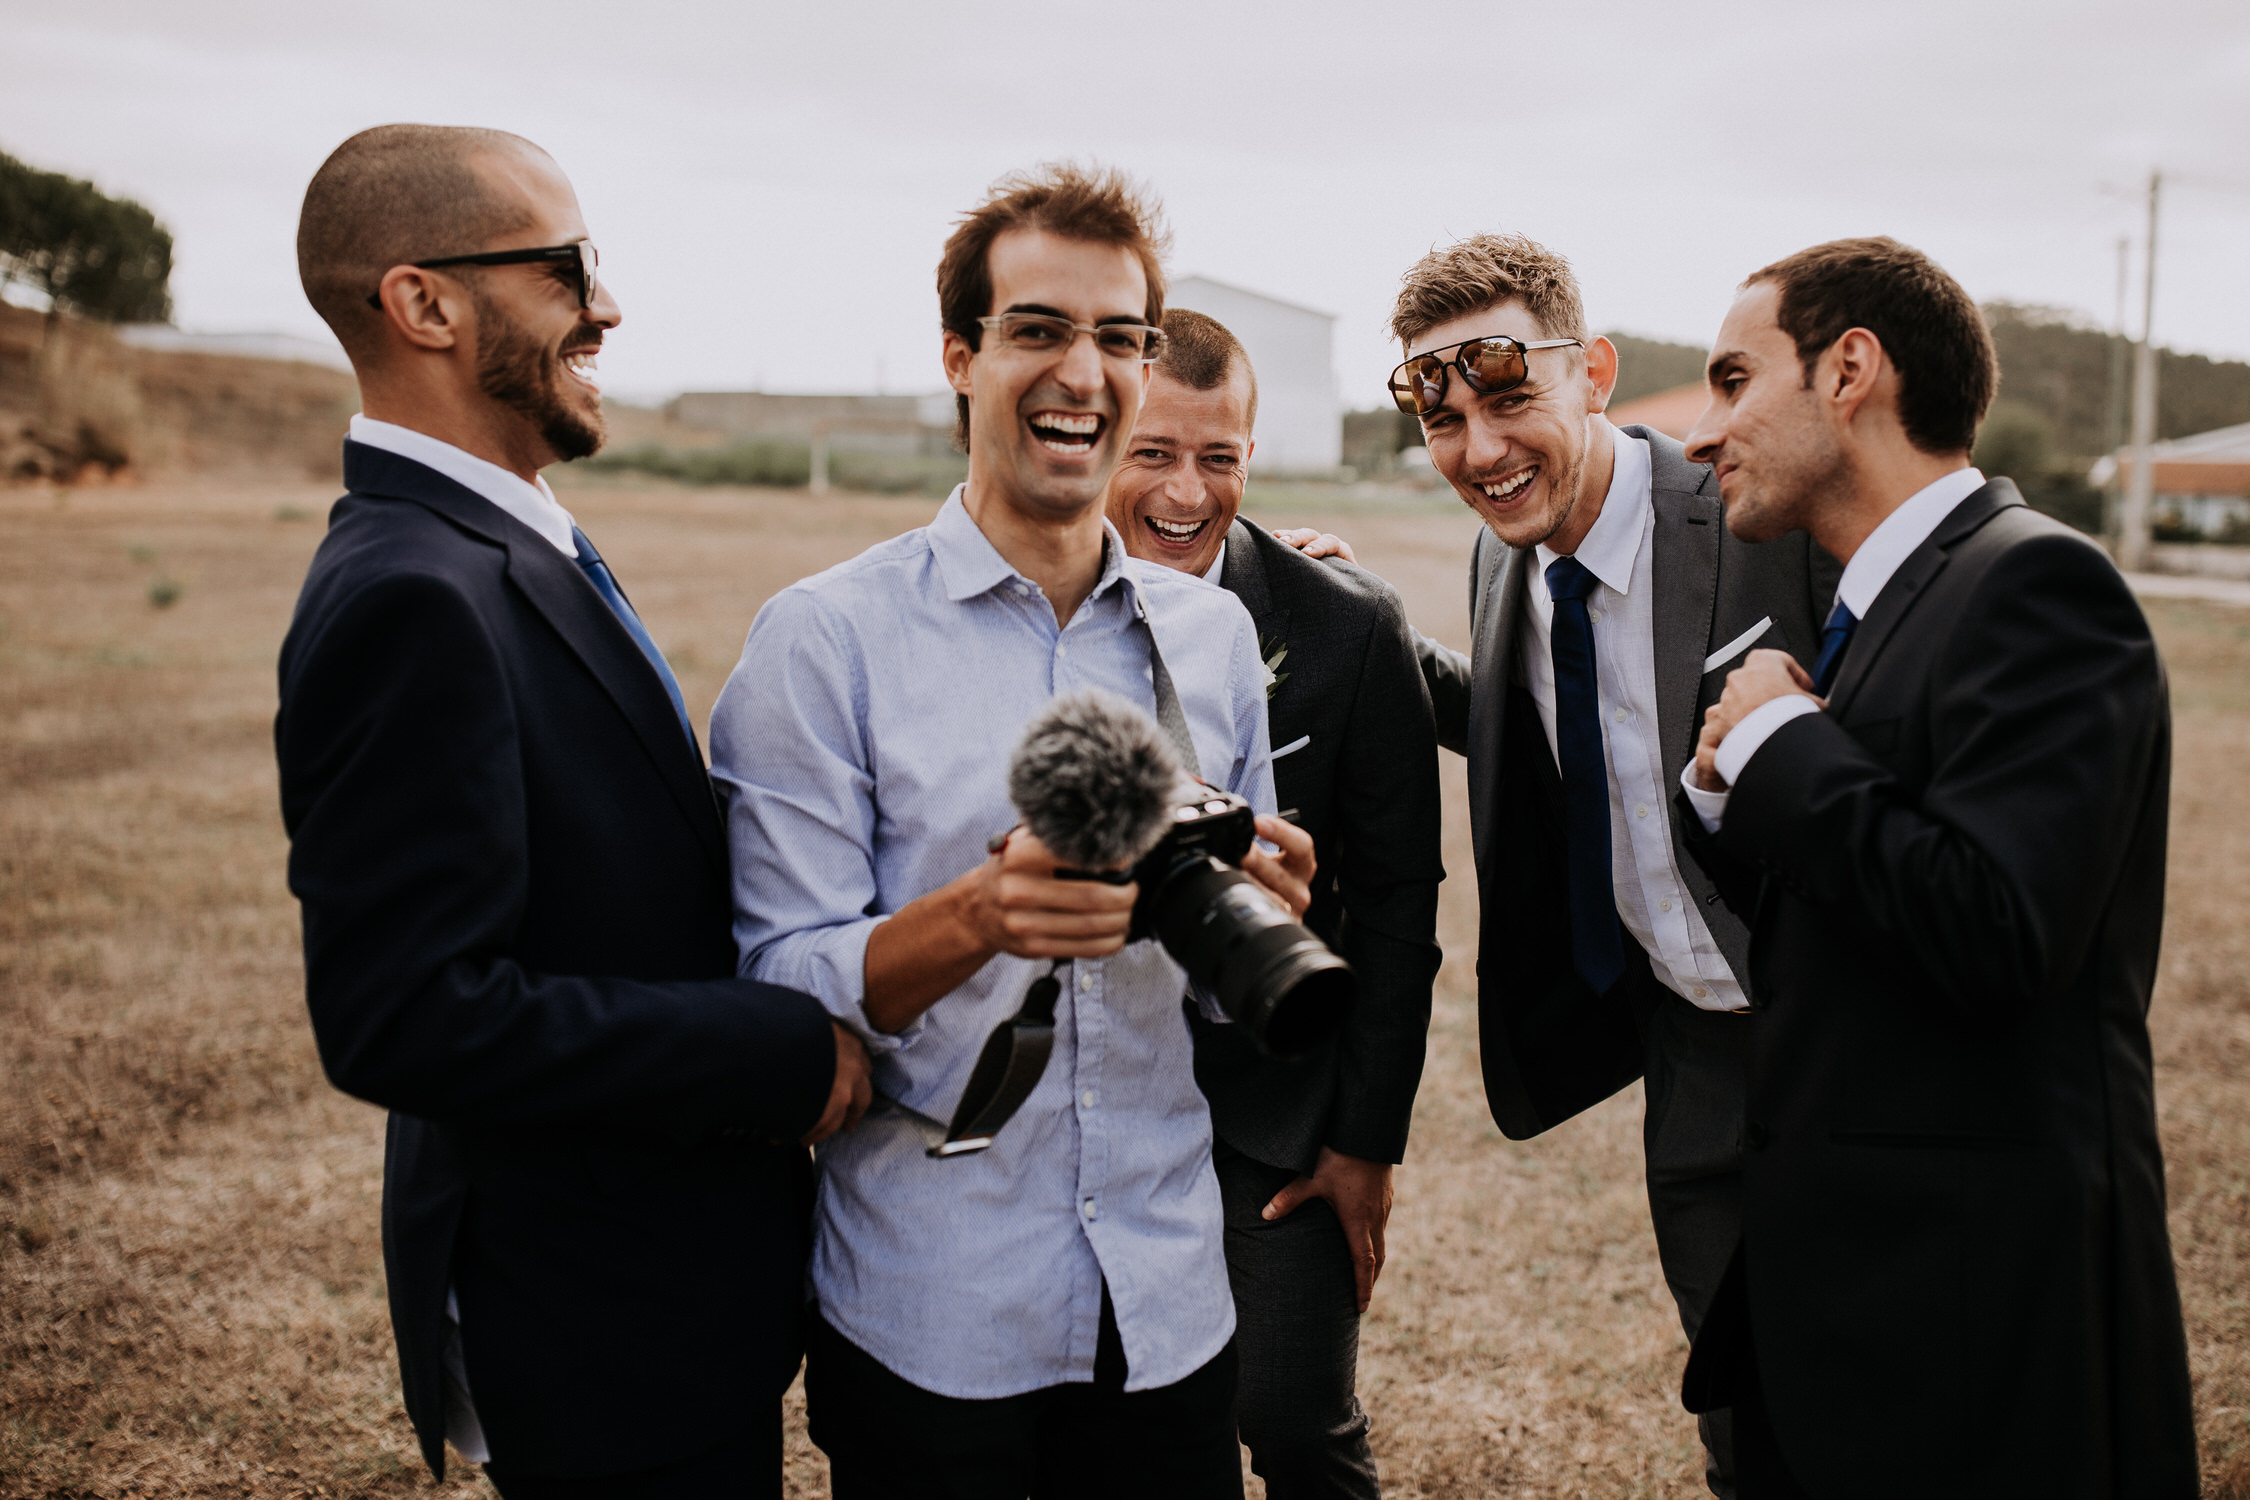 010 Filipe Santiago Fotografia Casamento wedding photographer near venue Lisbon Malveira Ericeira best Sintra Portugal destination groom prep friends